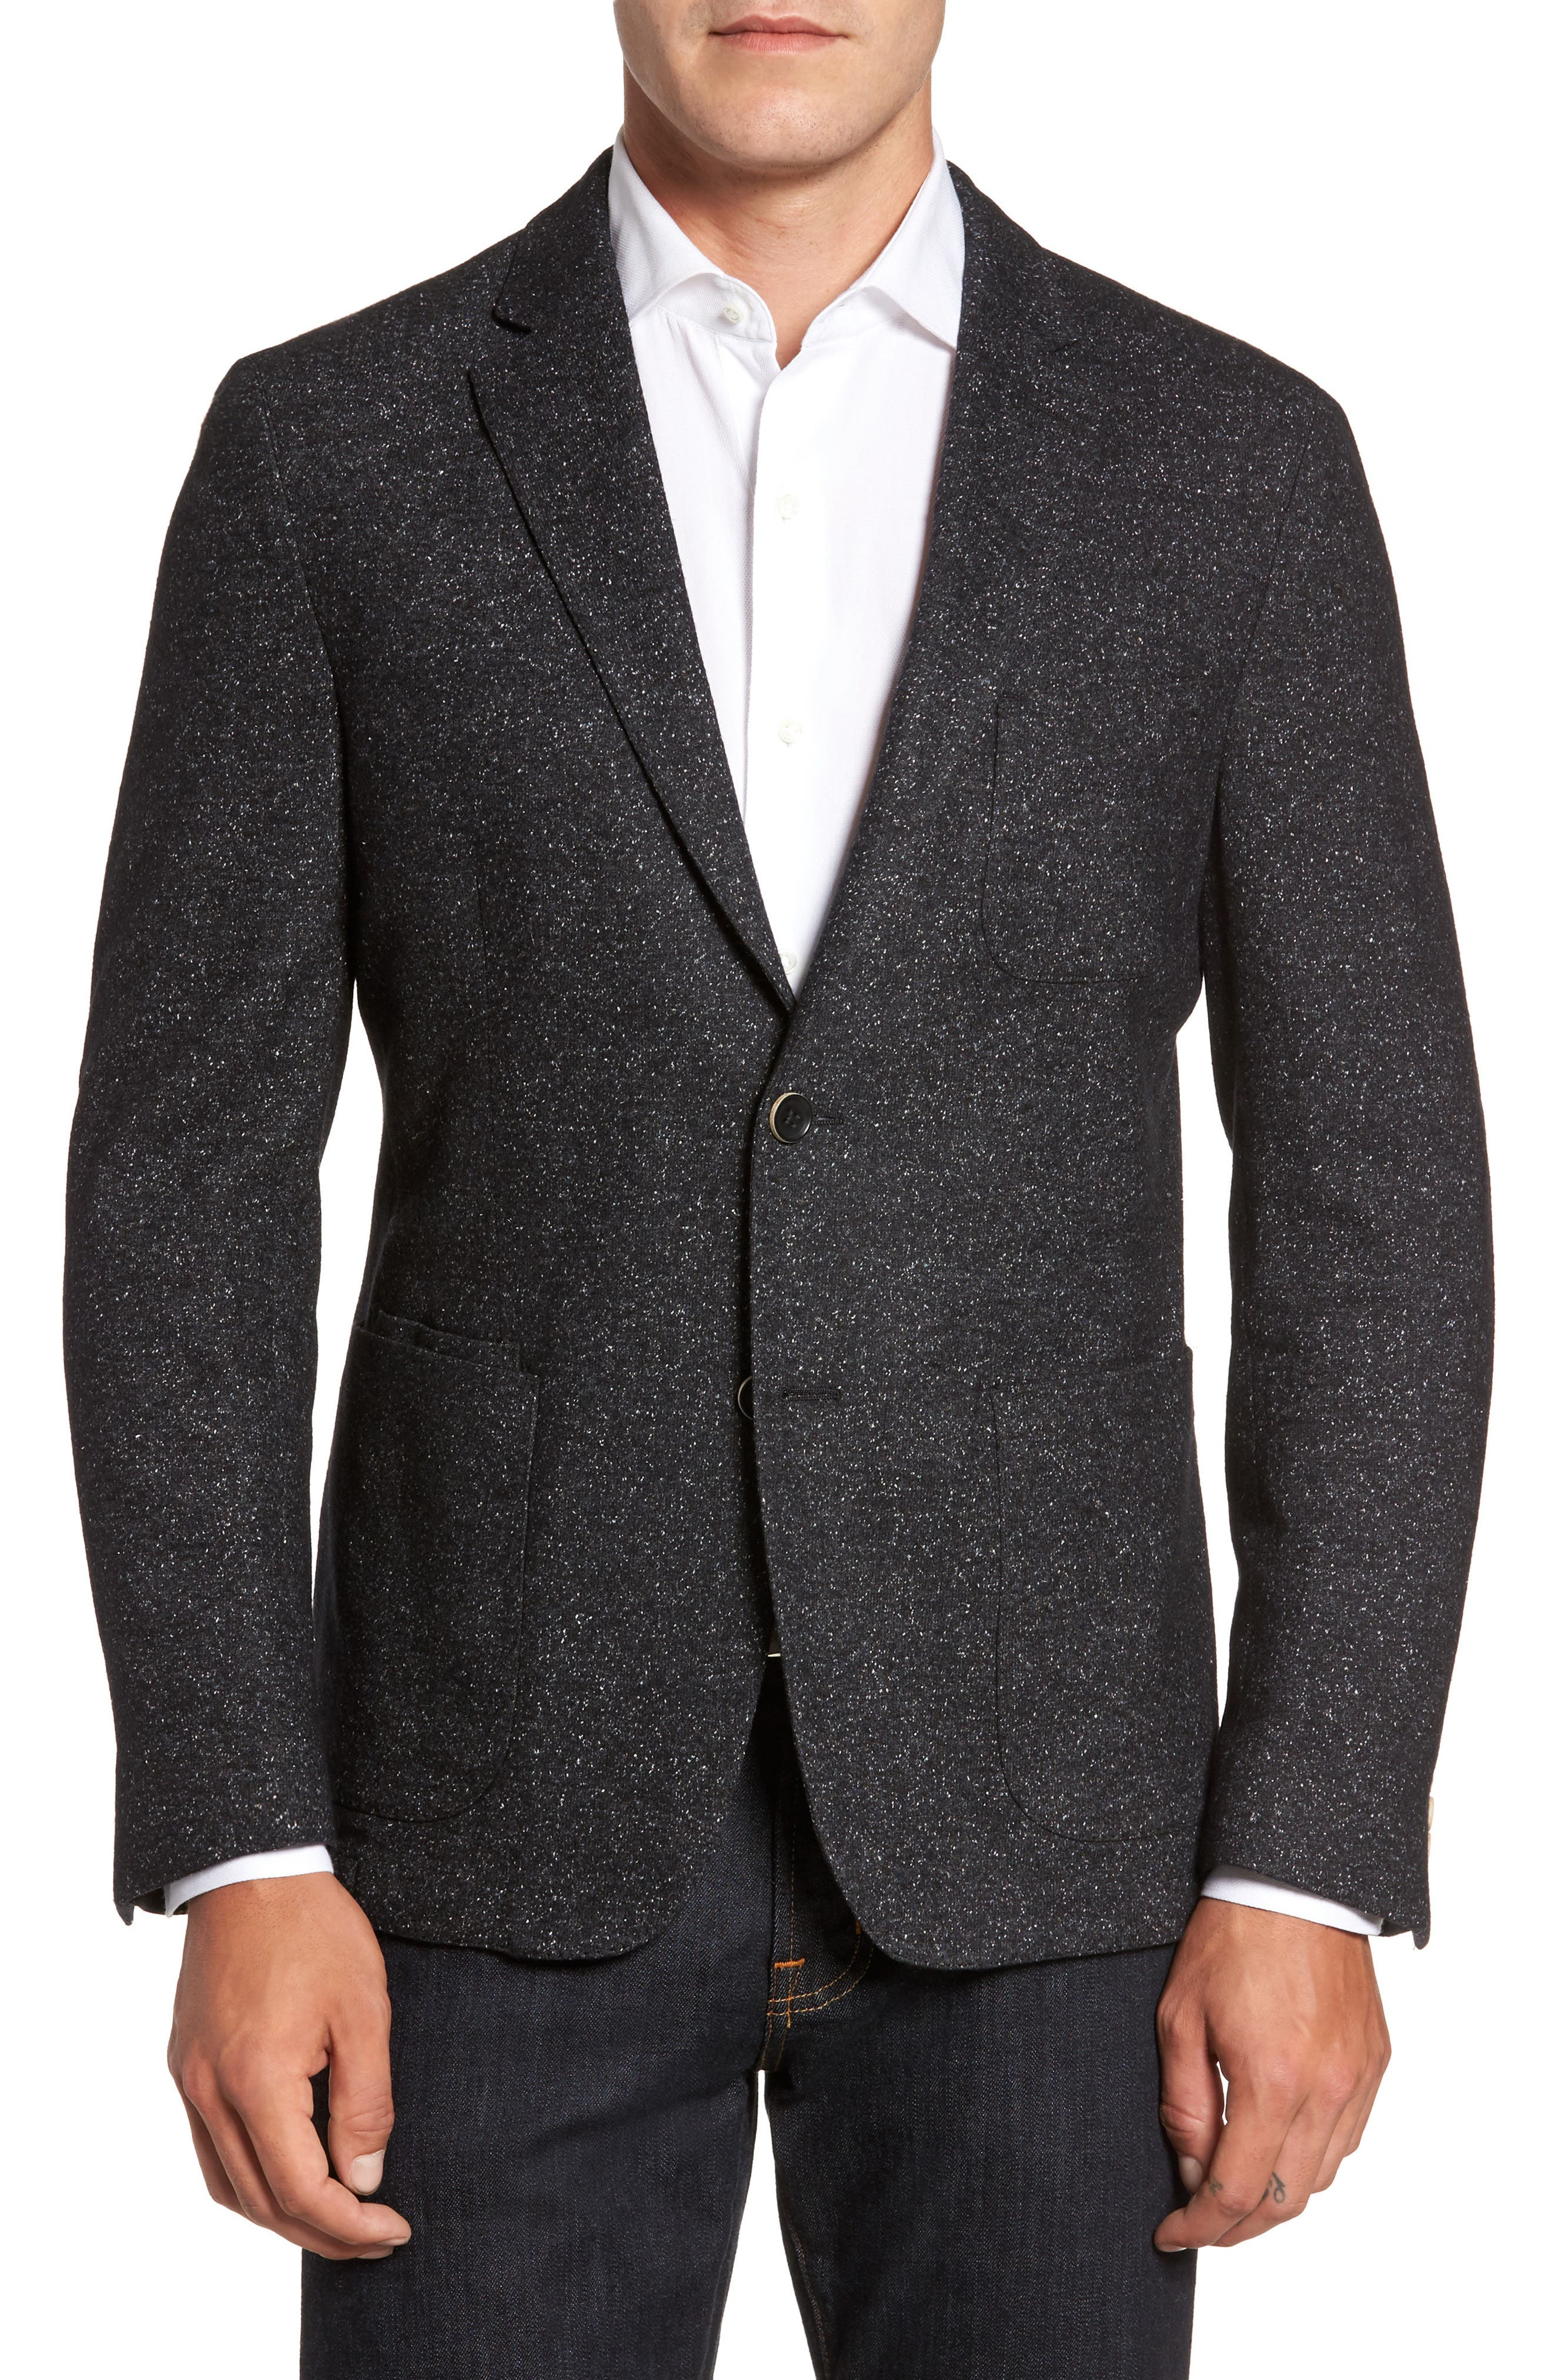 Main Image - FLYNT Donegal Classic Fit Suede Trim Jersey Sport Coat